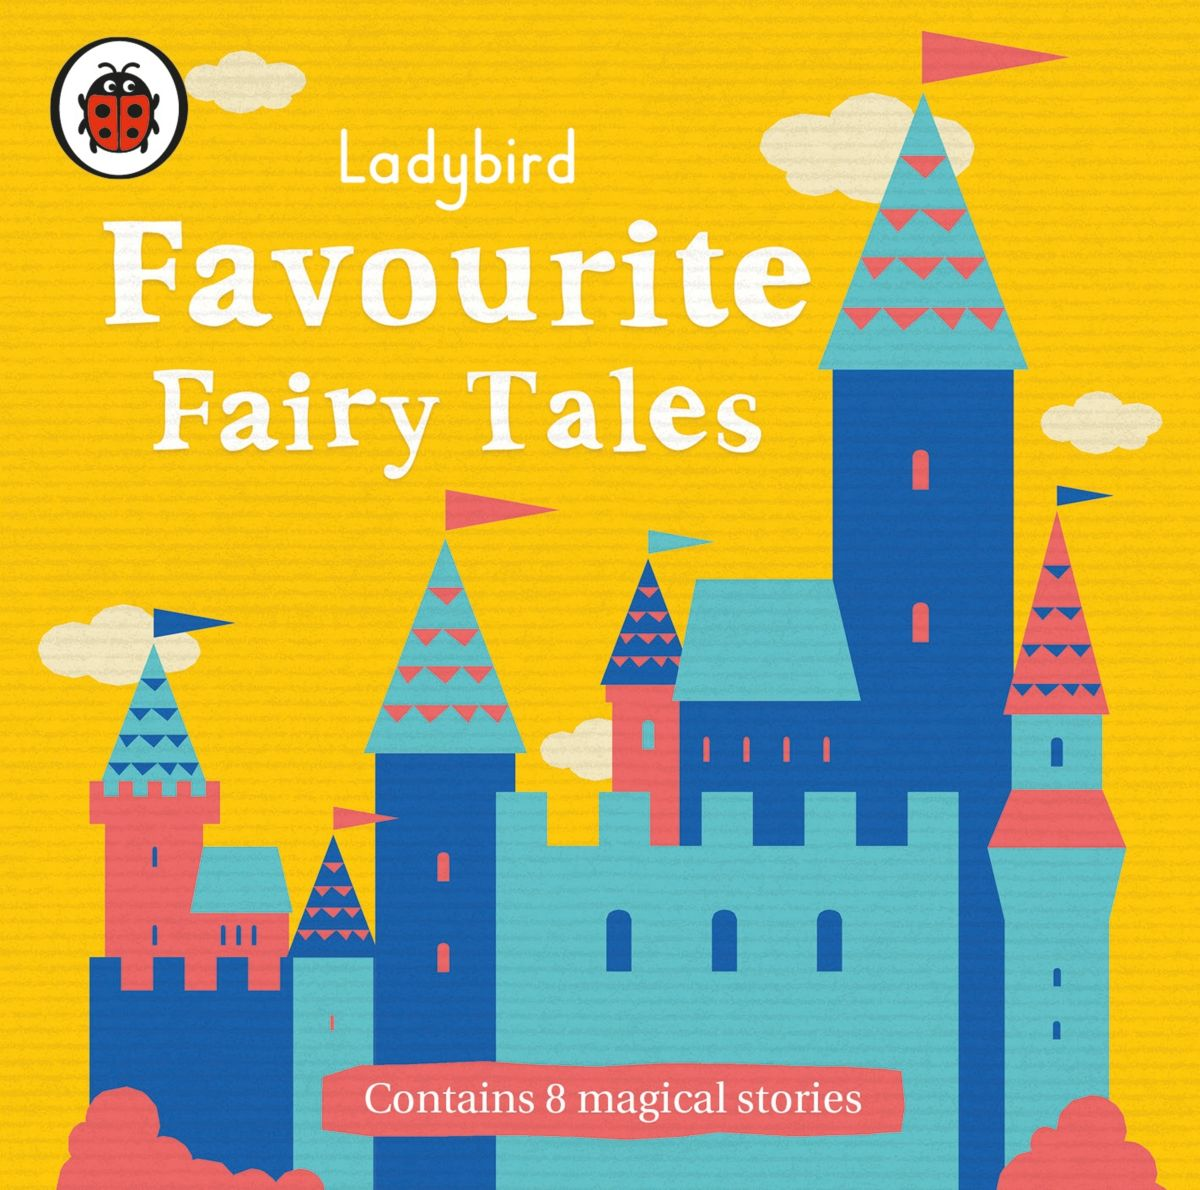 Ladybird Favourite Fairy Tales (1 CD) the complete fairy tales and stories